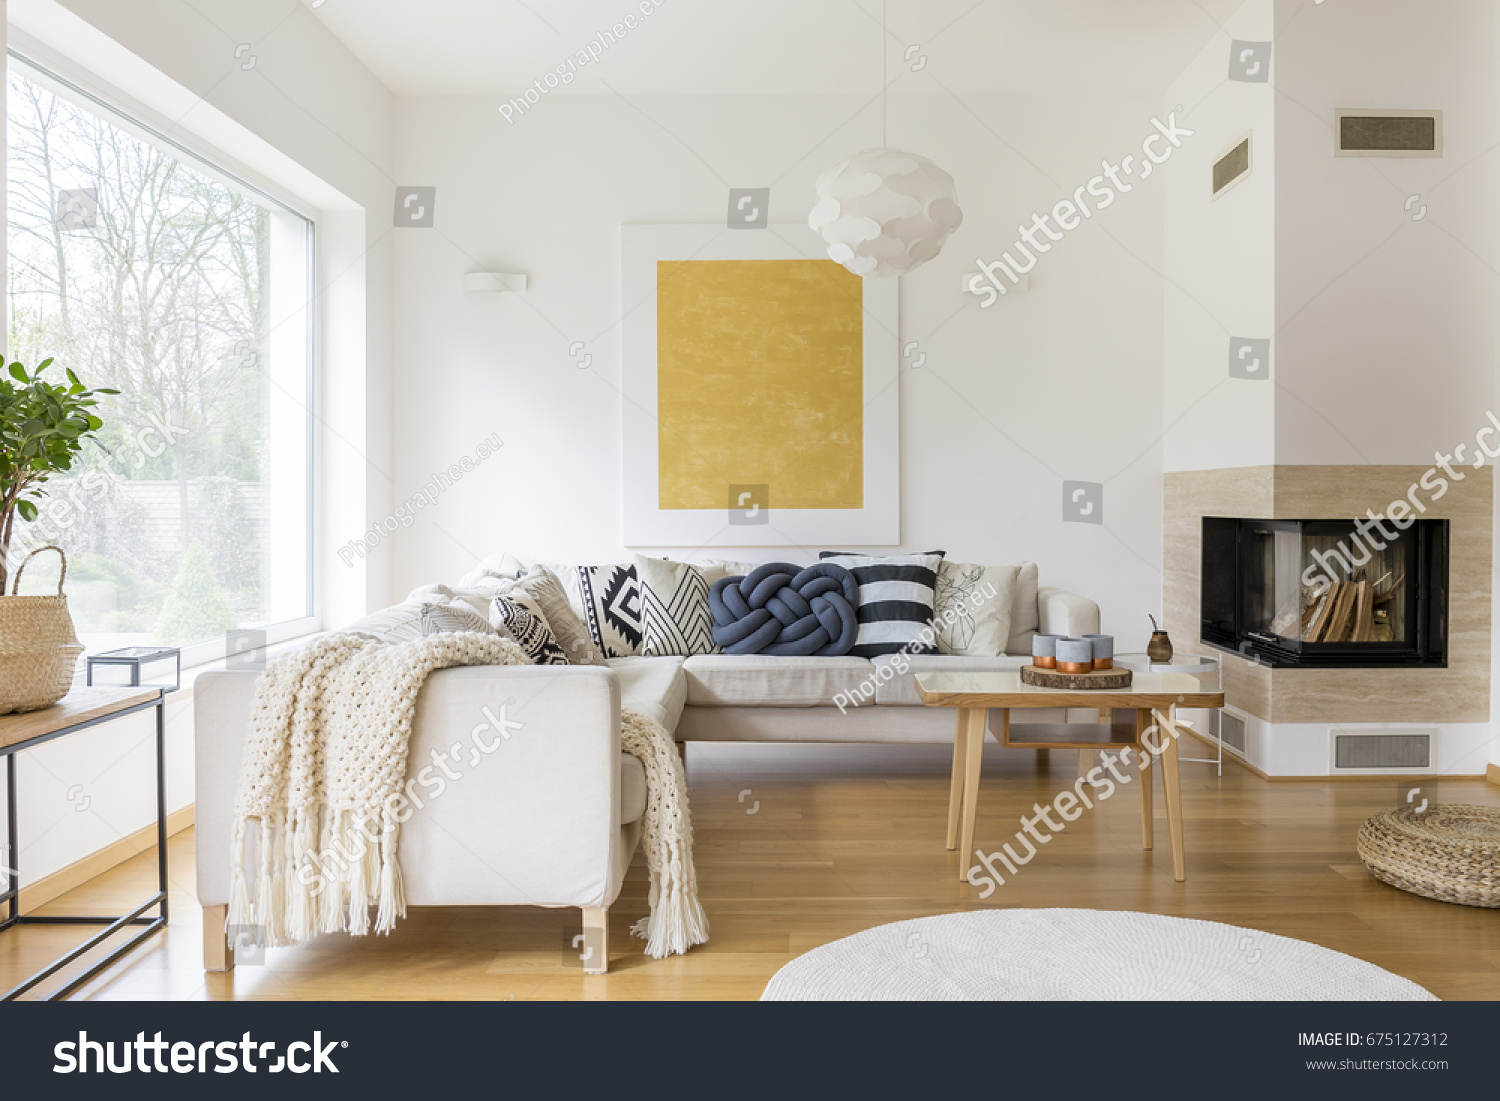 white sofas in living rooms. White sofa with pillows and modern fireplace in stylish living room Sofa Pillows Modern Fireplace Stylish Stock Photo 675127312